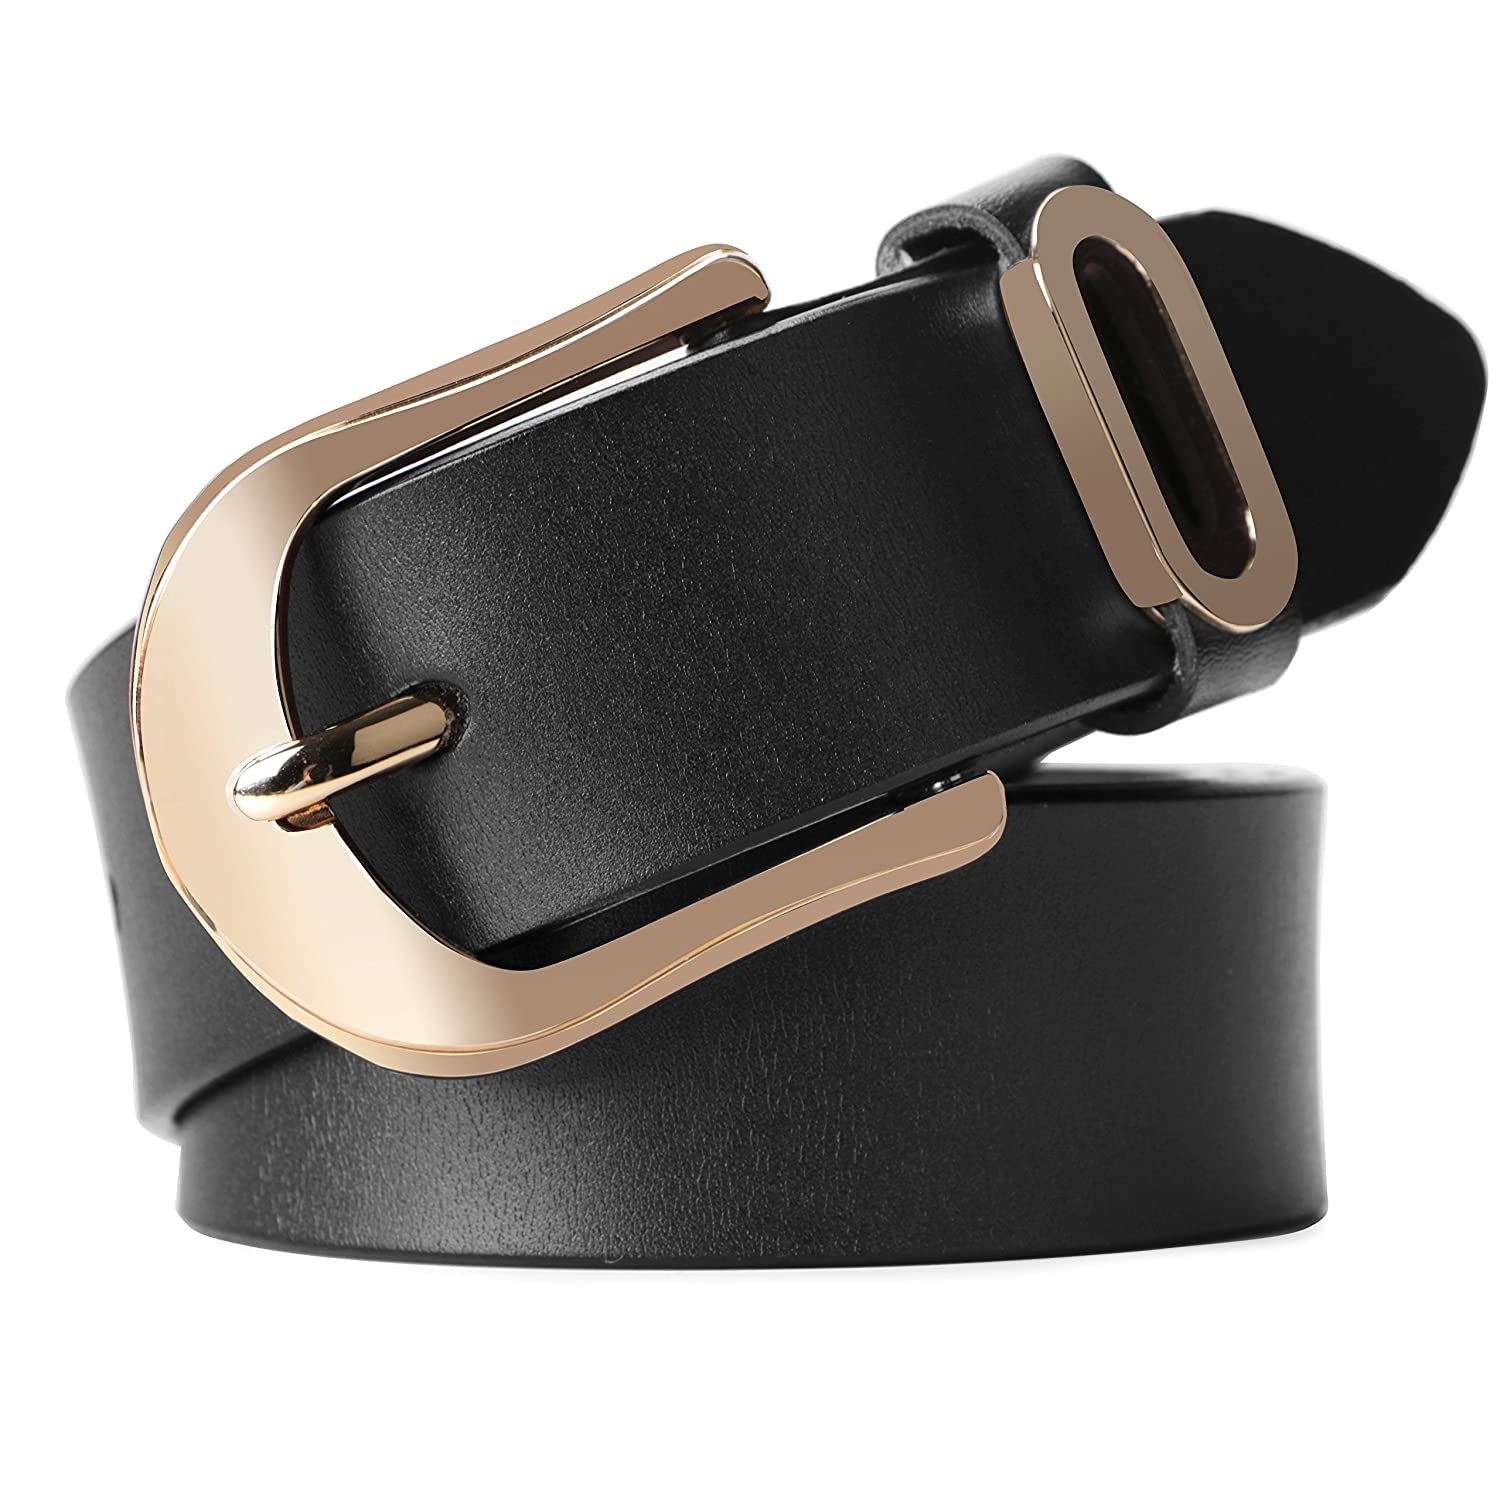 Whippy Women Casual Leather Belt for Jeans, 1.2 Inch Wide with Golden Buckle,Black JGO28